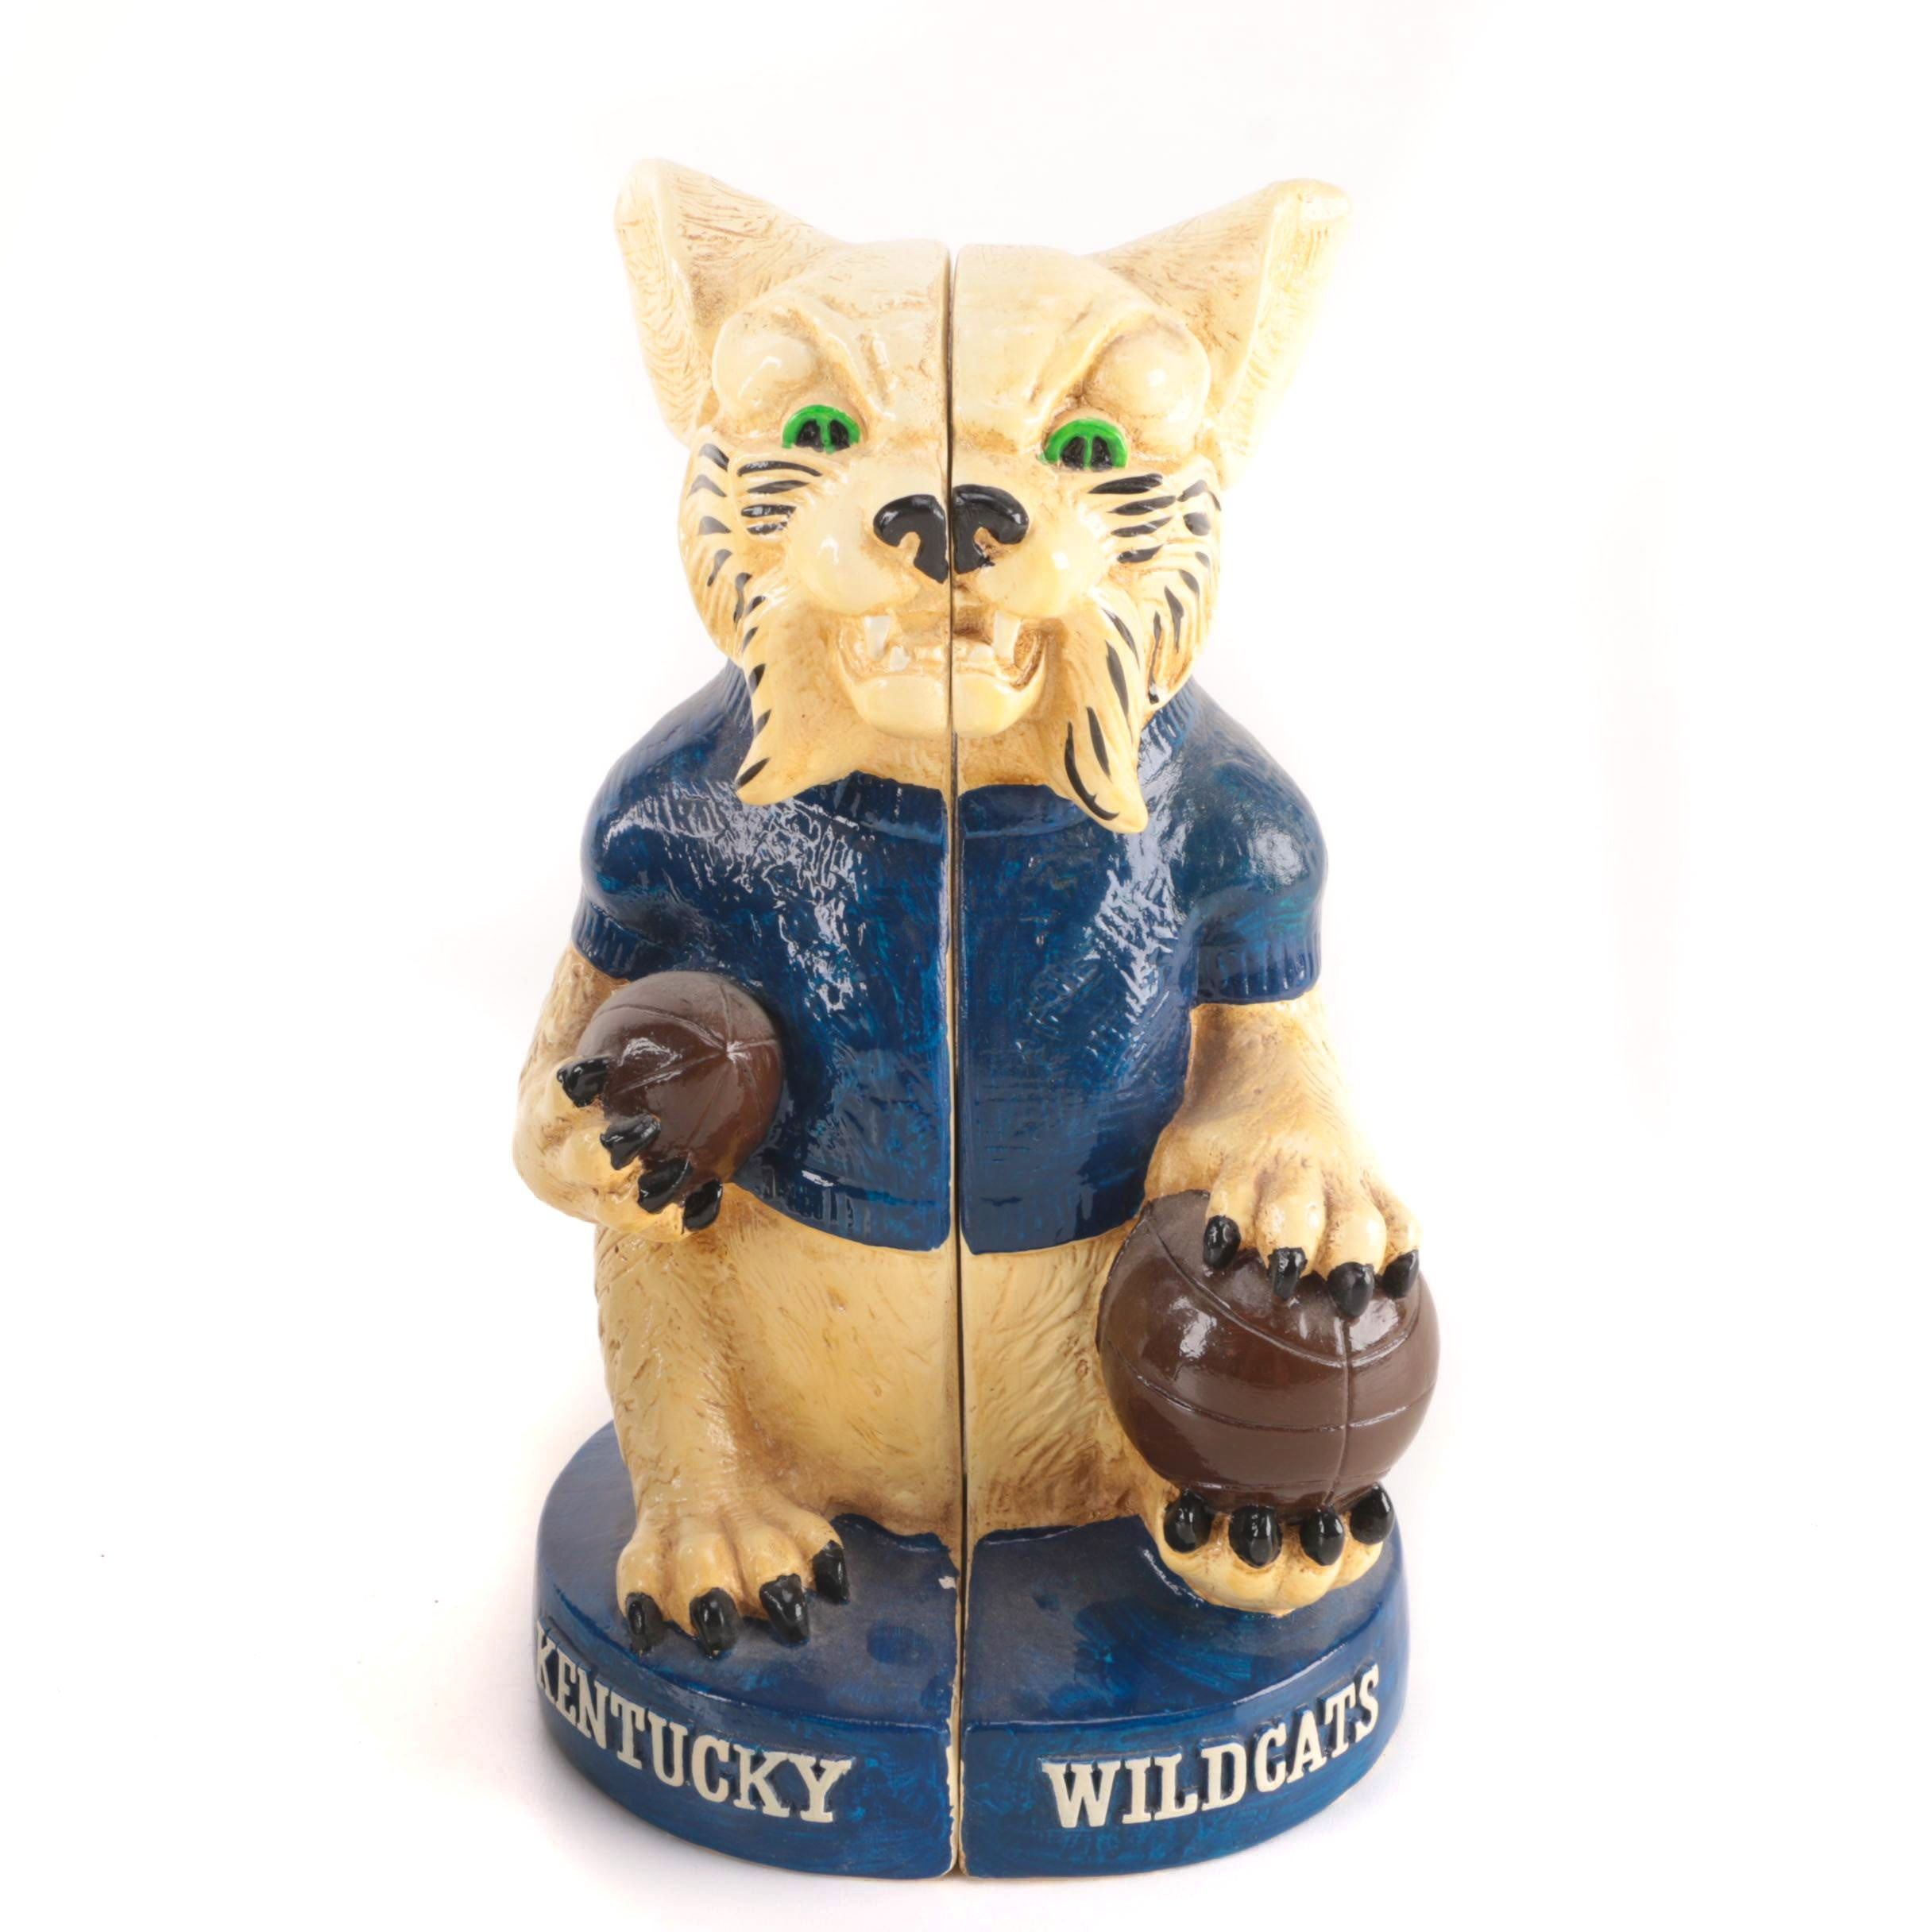 Kentucky Wildcats Ceramic Bookends